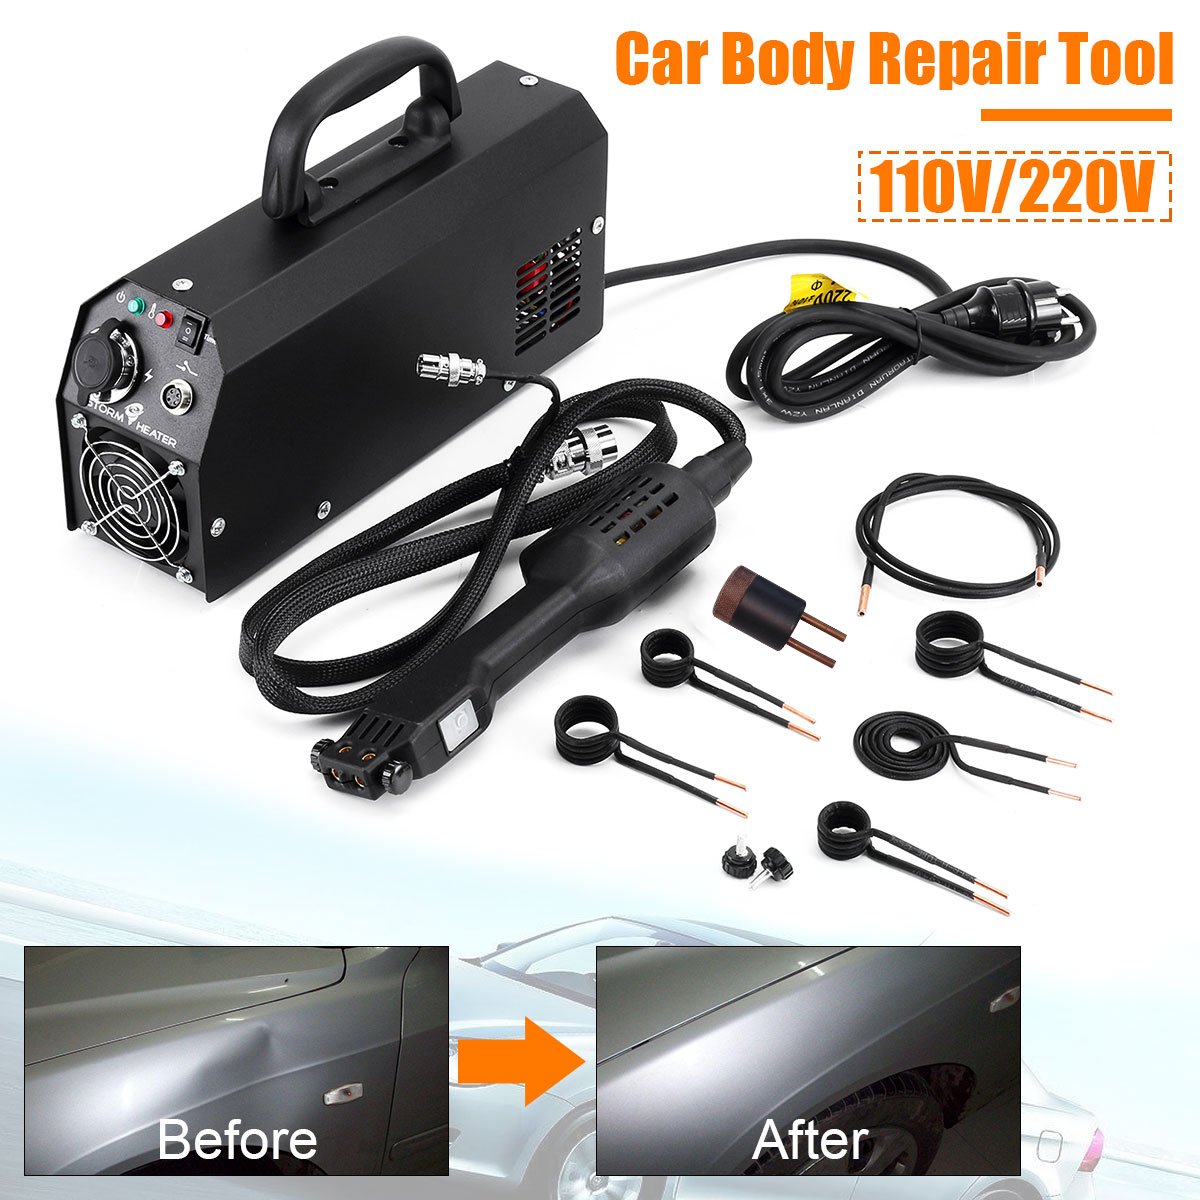 110/220 V 2000W Car Induction Heater Repair Machines Tool Paintless Removing For Car Repair Removal Of Dents Car Body Repair